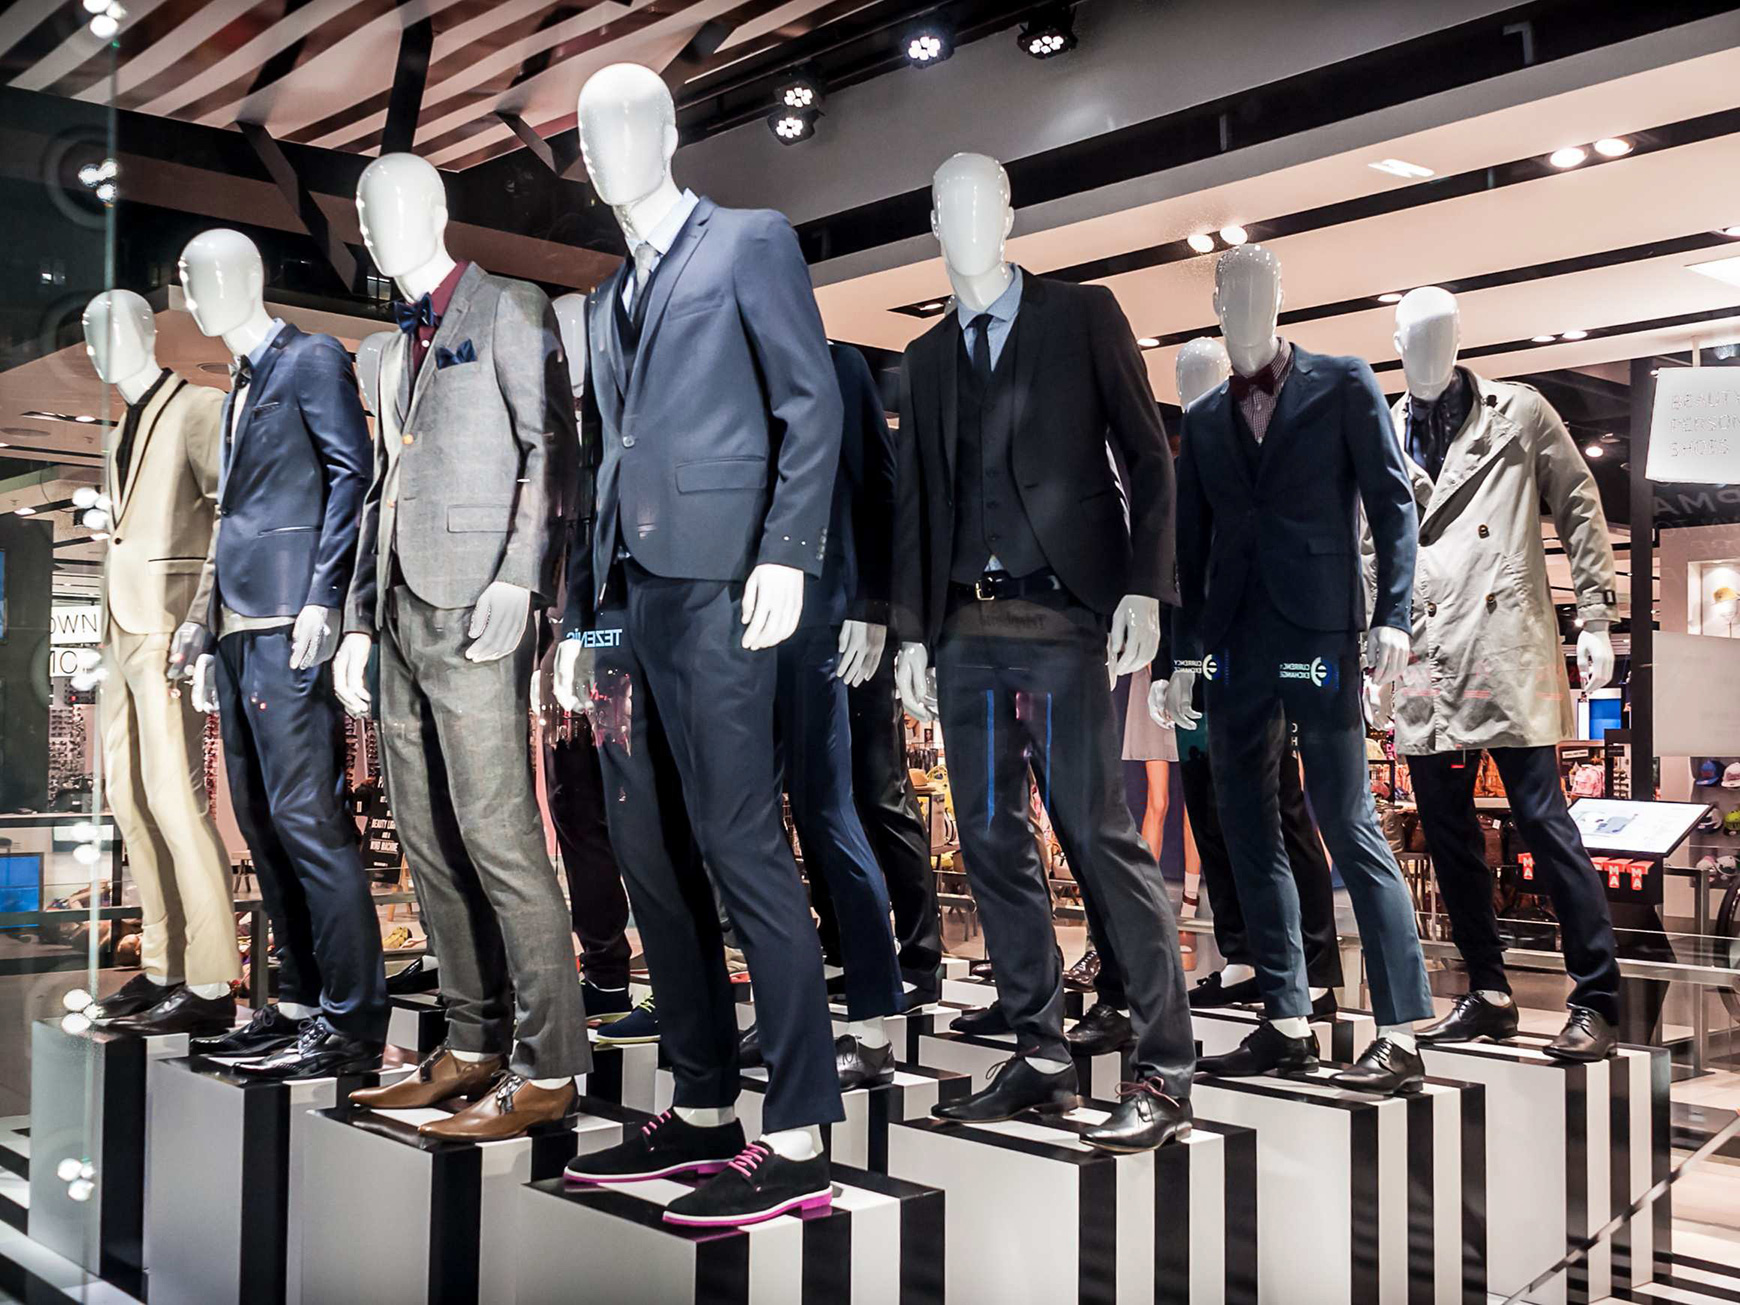 many male mannequins in a store